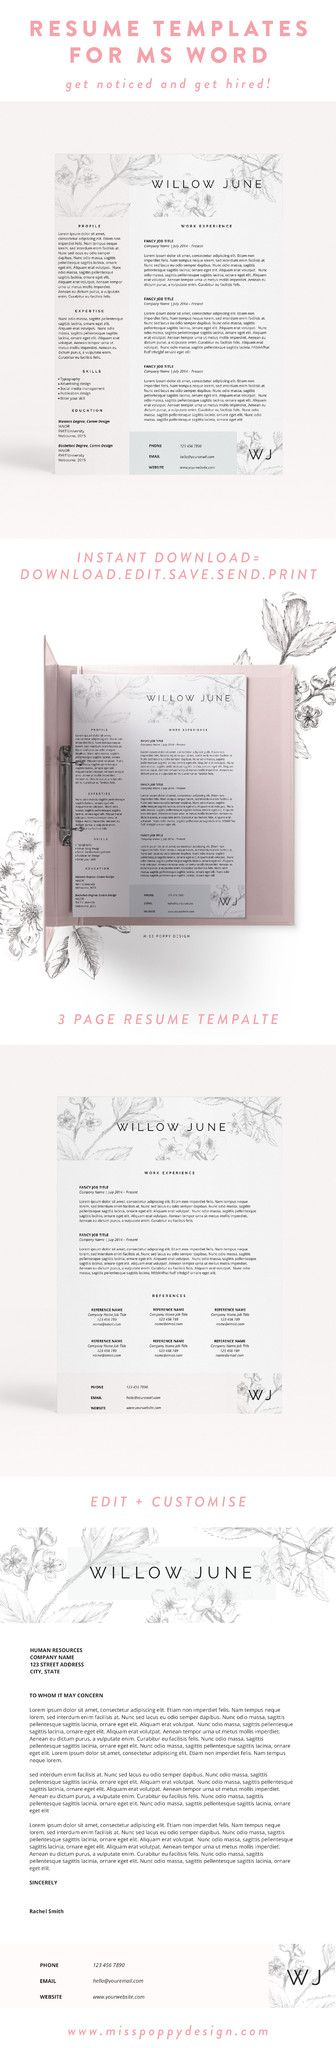 Best 25+ Online resume template ideas on Pinterest Online cv - ios developer resume